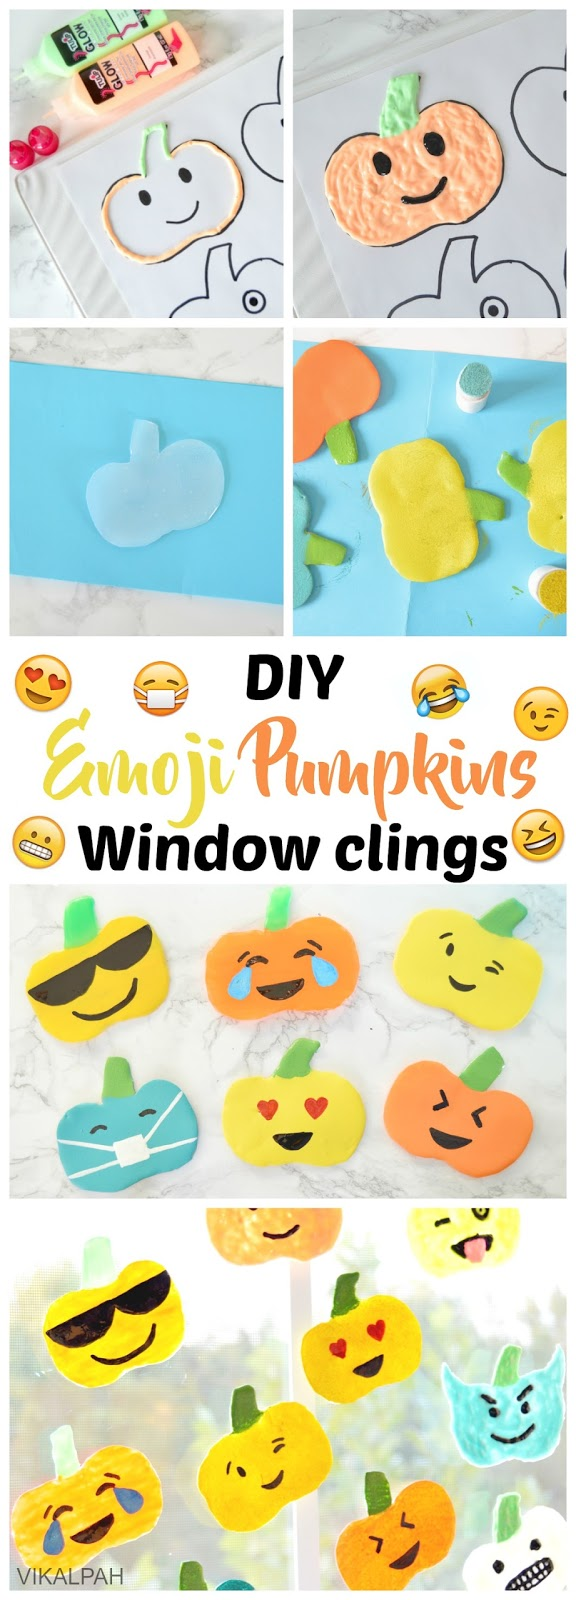 DIY window clings using puffy paint and hot glue gun